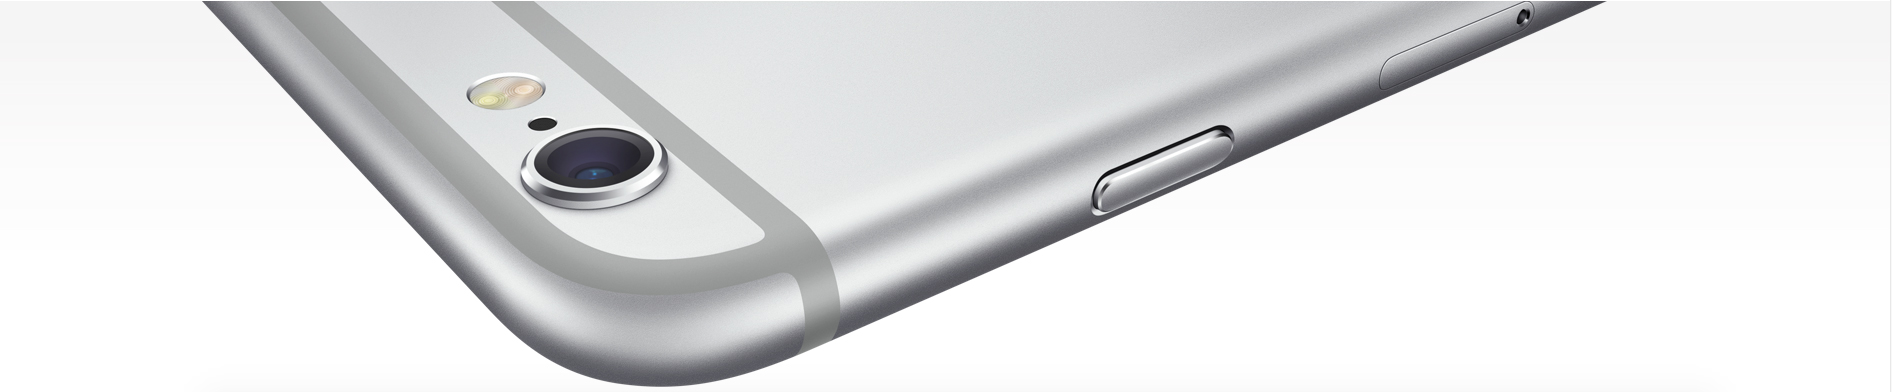 The upgraded camera of the 'iPhone 6s' is coming into focus